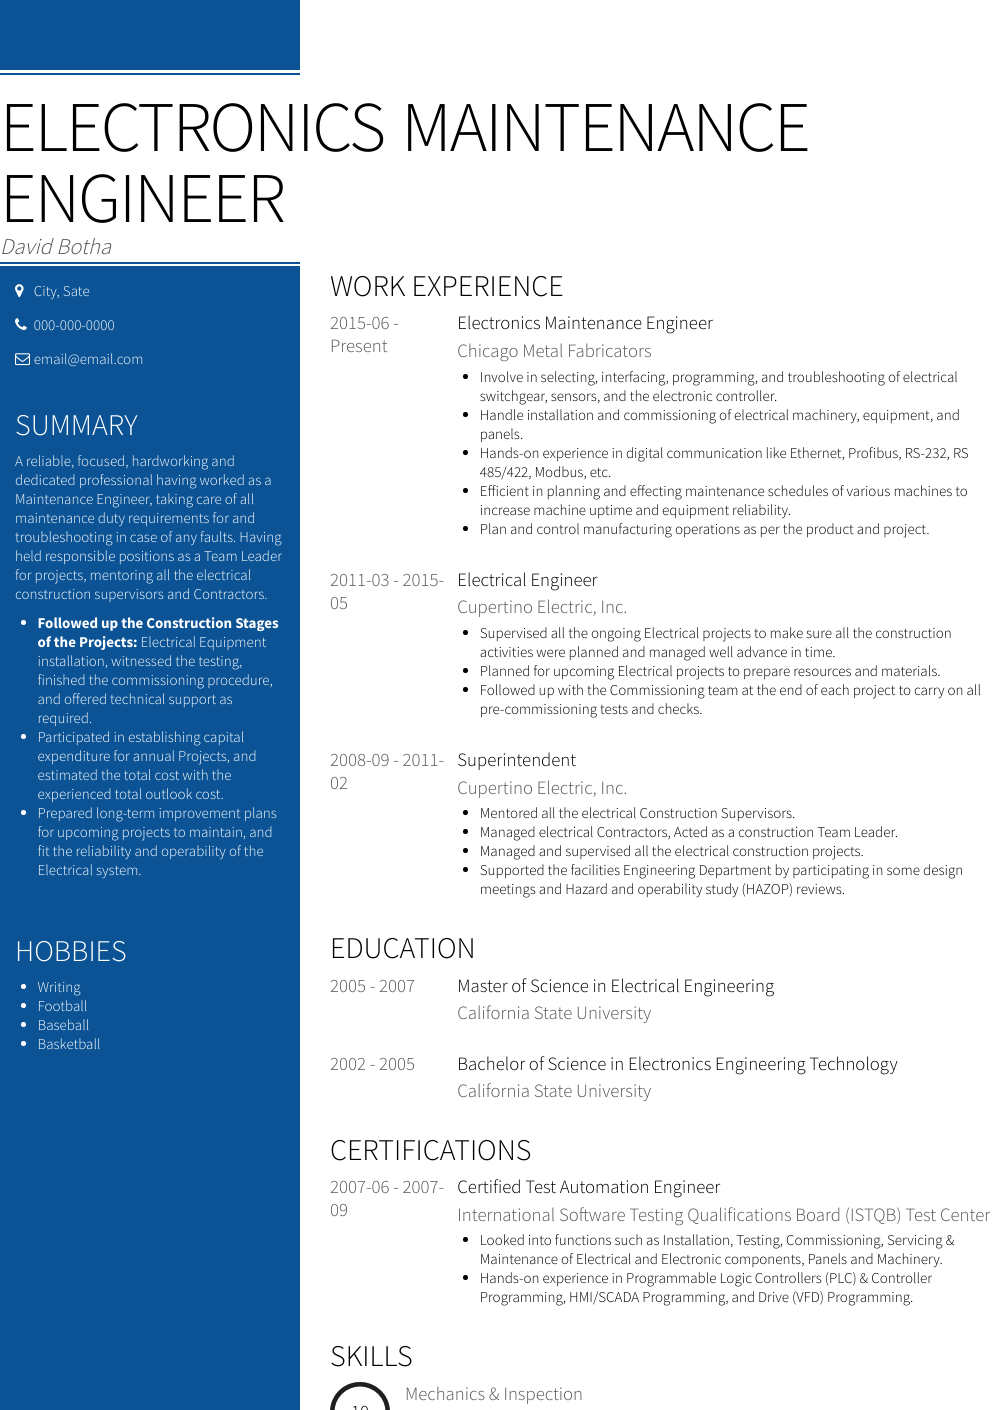 Electronics Maintenance Engineer Resume Sample